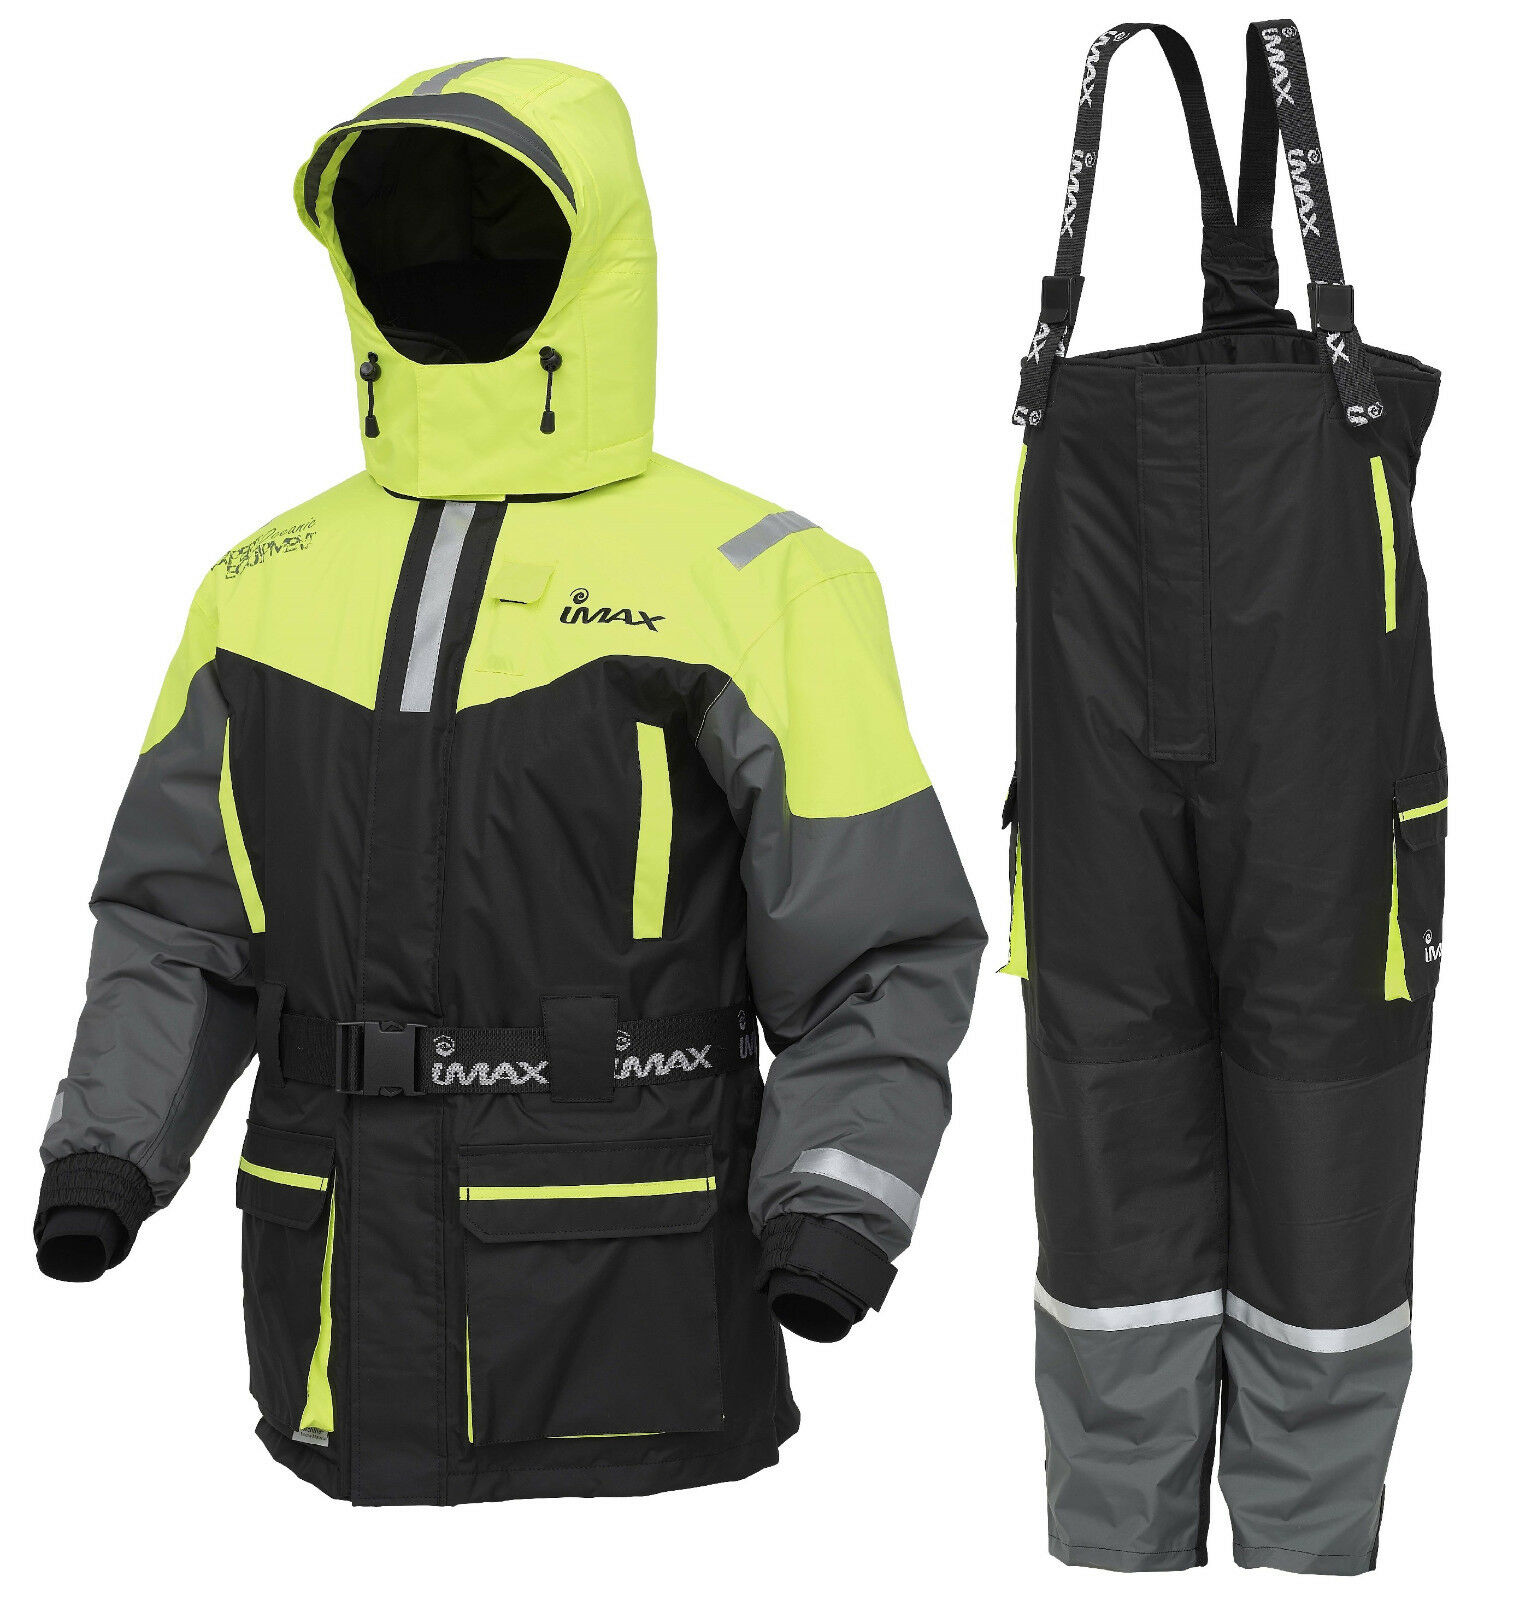 Imax Seawave Floatation Suit 2-teiliger Floating Suit Floater